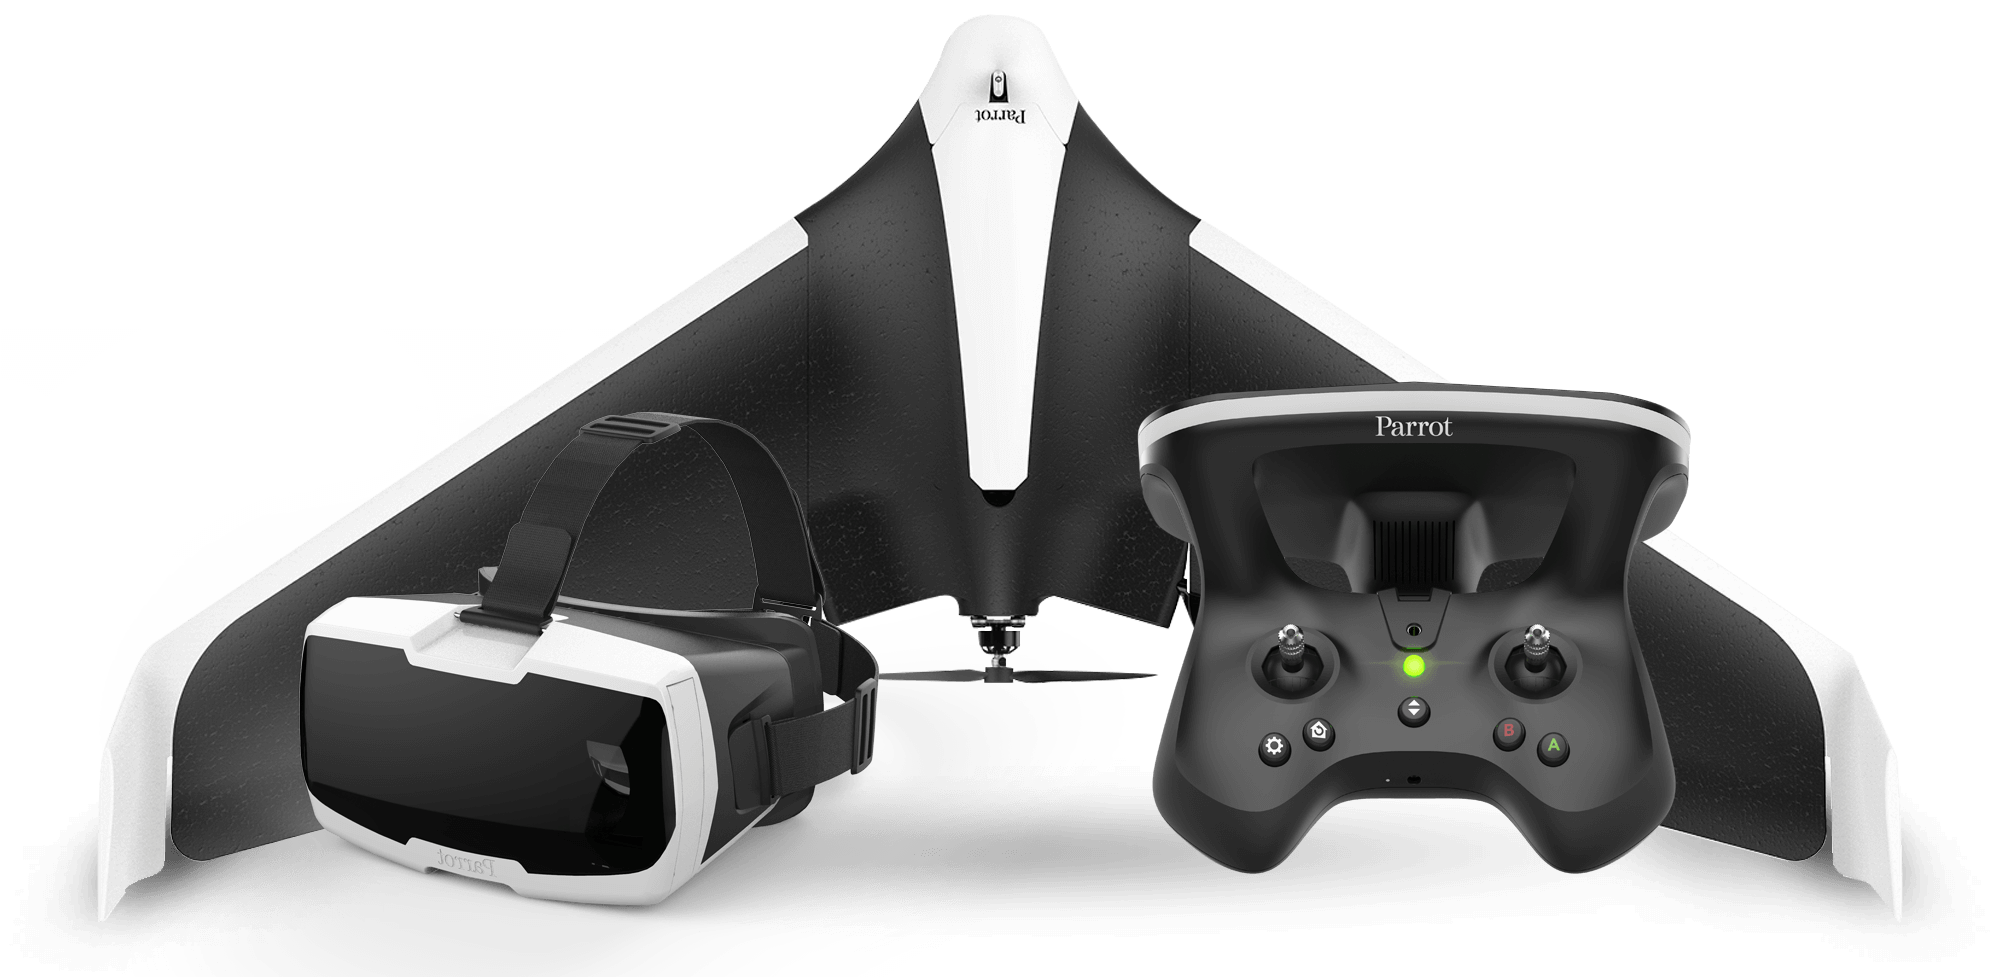 Can't wait to get my hands on this NEW fixed wing ship, released earlier this year at Consumer Electronics Show in Las Vagas the NEW  Parrot Disco !   I have one on order, review soon!